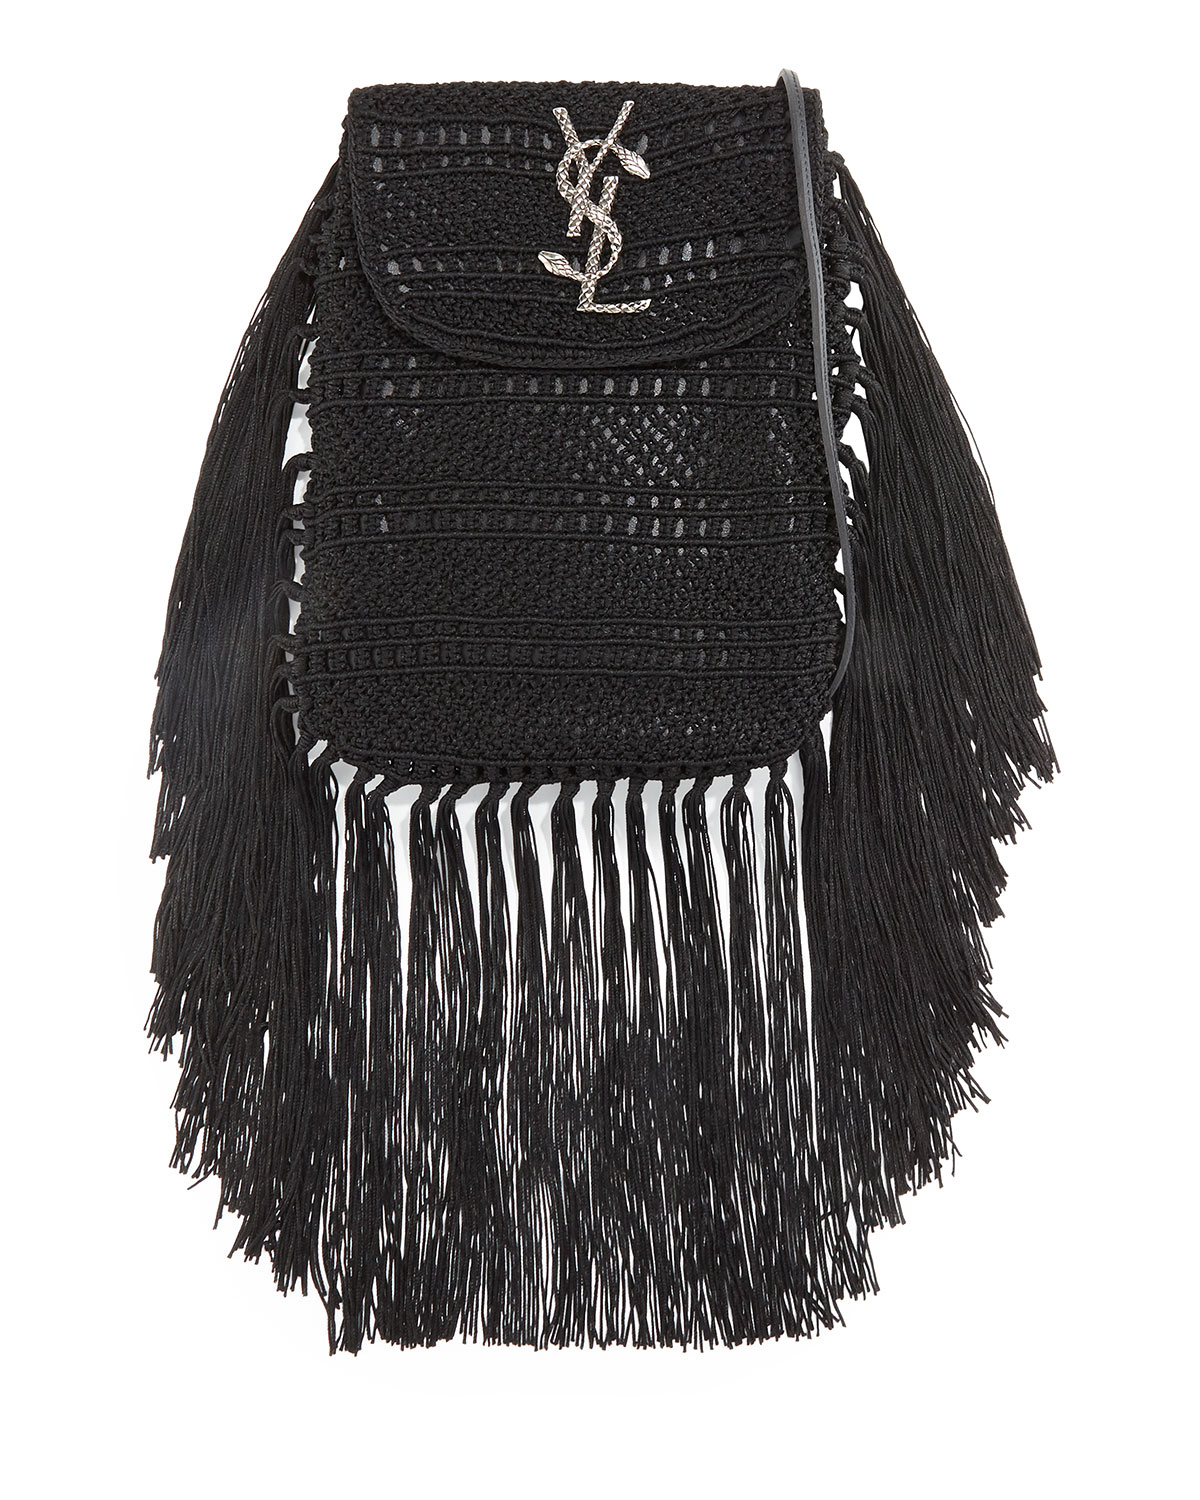 155ee878a4 Saint Laurent Anita Fringe Crochet Leather Small Crossbody Bag ...